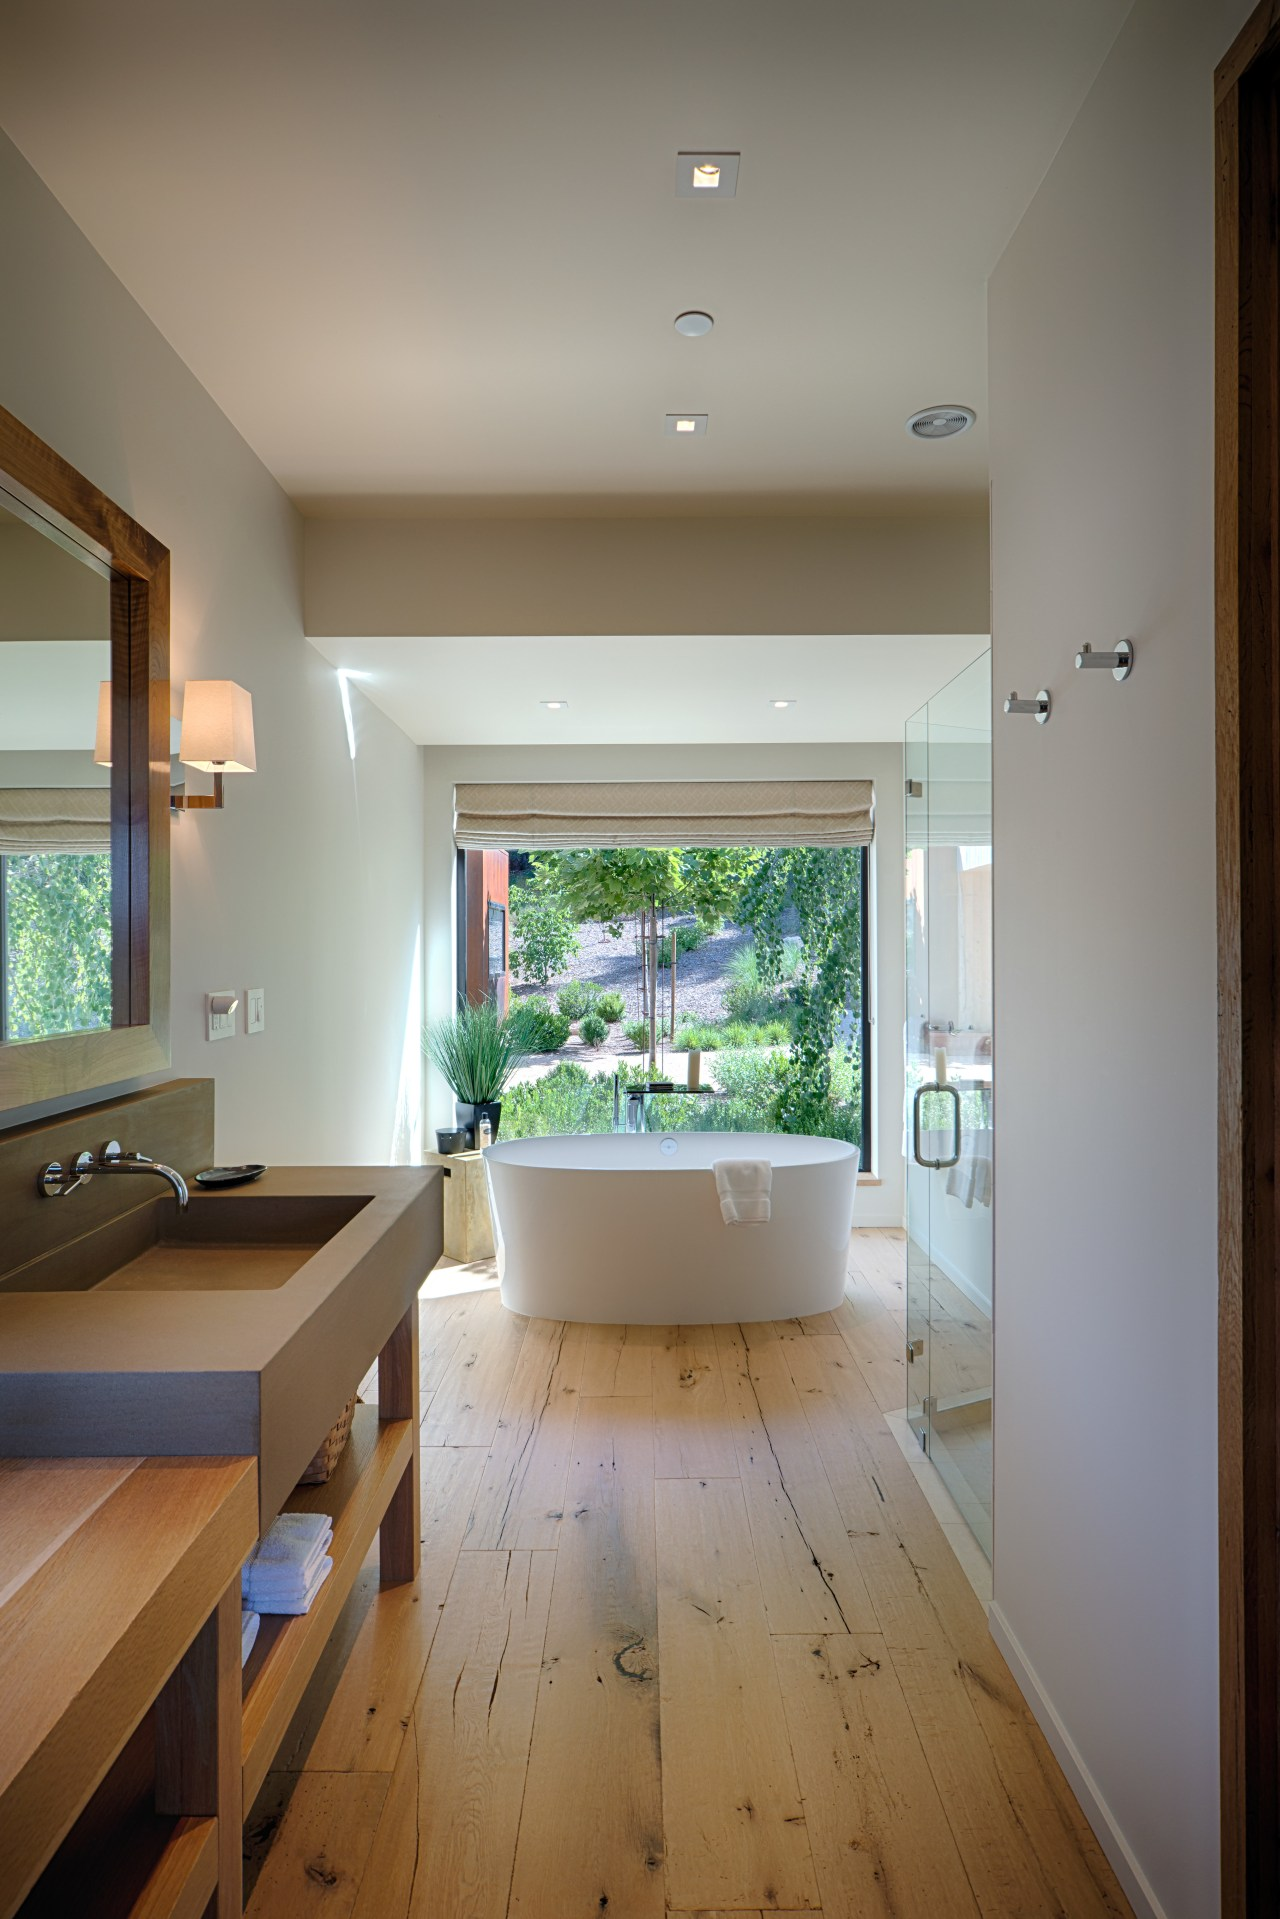 This bathroom shows the more contemporary feel that architecture, ceiling, daylighting, floor, flooring, hardwood, home, house, interior design, living room, real estate, room, window, wood flooring, gray, brown